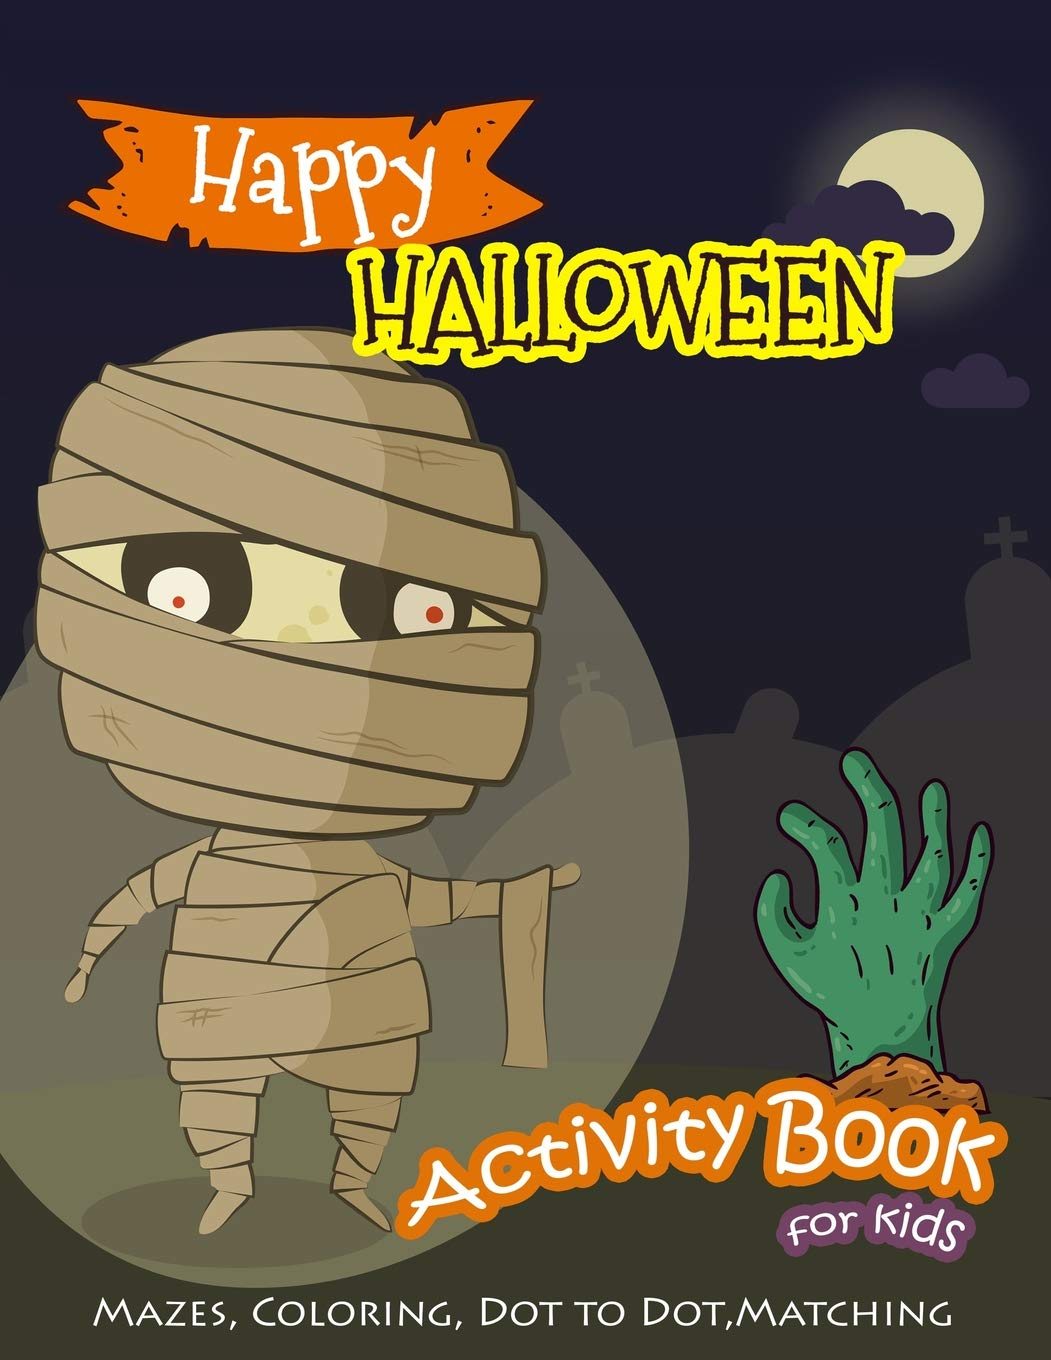 Happy Halloween Activity Book For Kids Mazes Coloring Dot To Dot